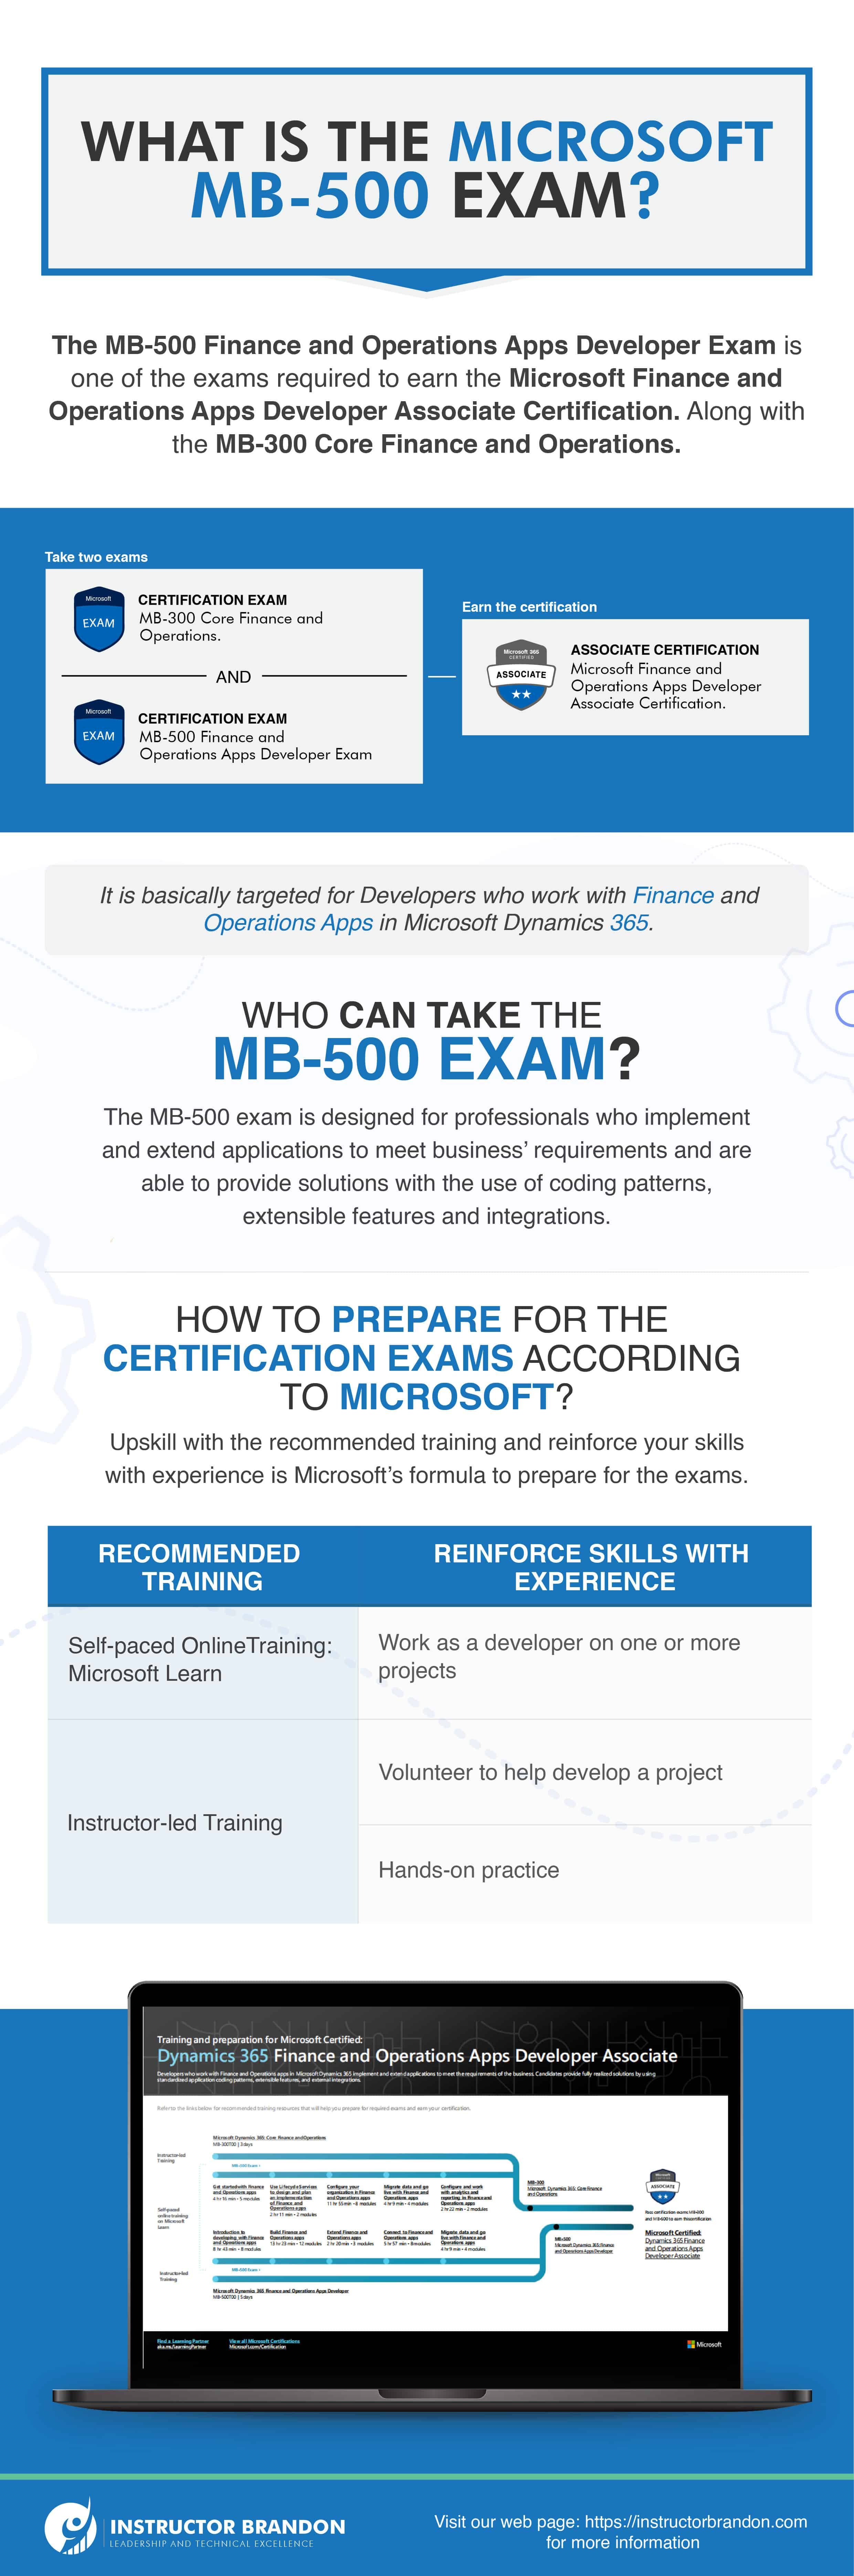 Importance of hands-on practice to prepare for MB-500 Exam